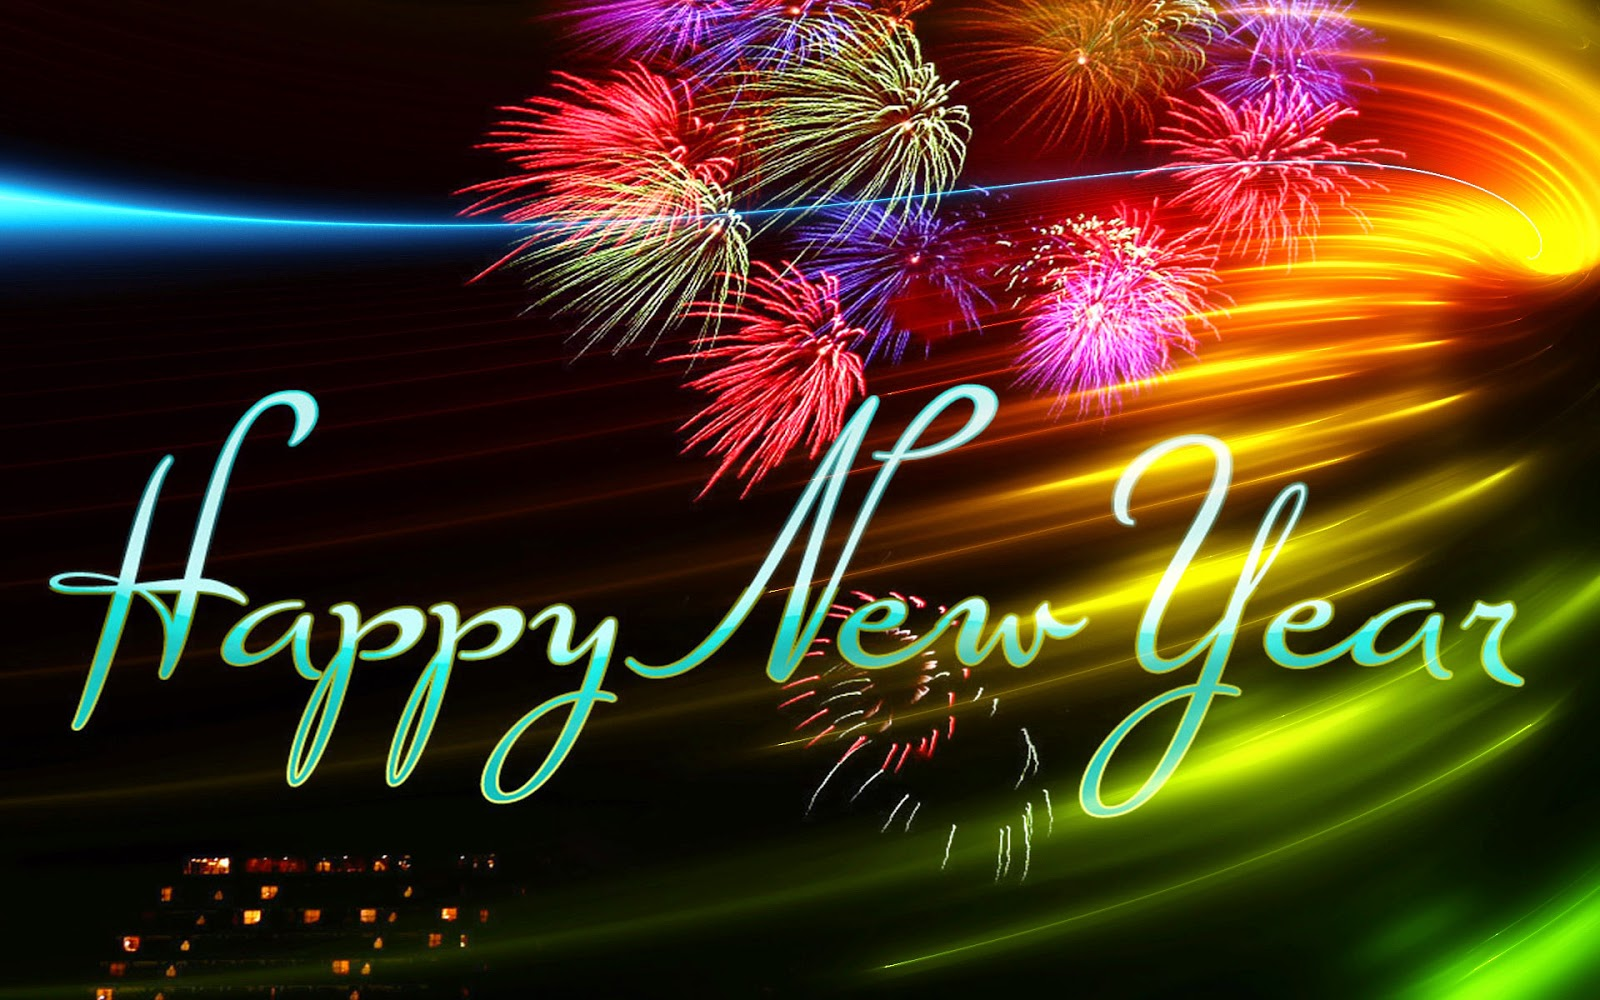 Happy New Year 2016 hd Images, Wallpapers - Free Download